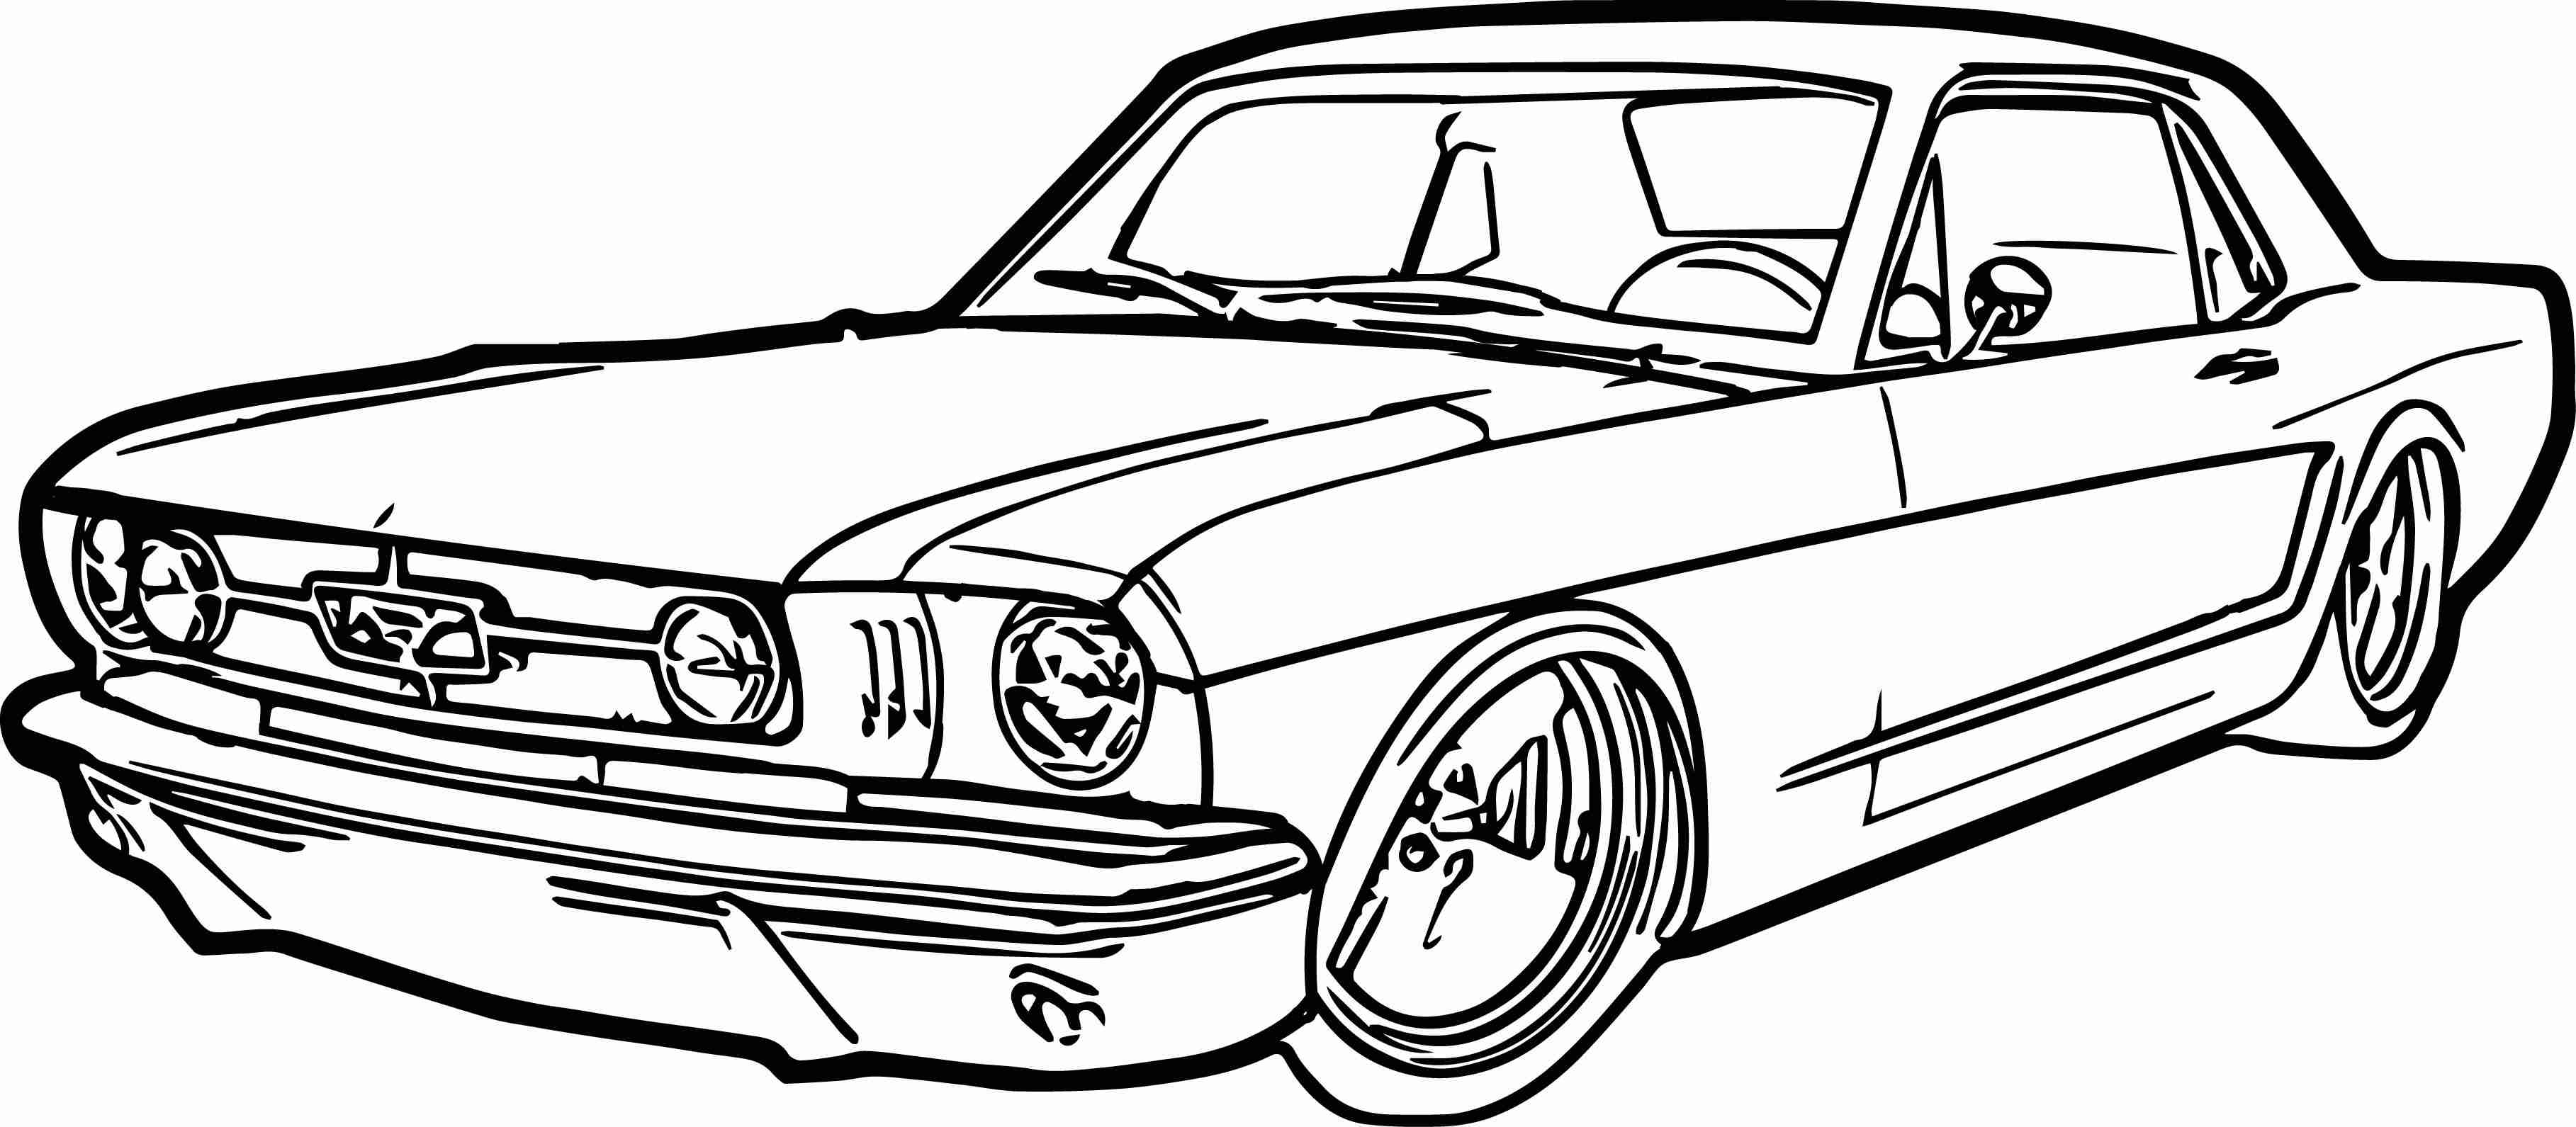 colouring in cars car coloring pages best coloring pages for kids in colouring cars 1 1